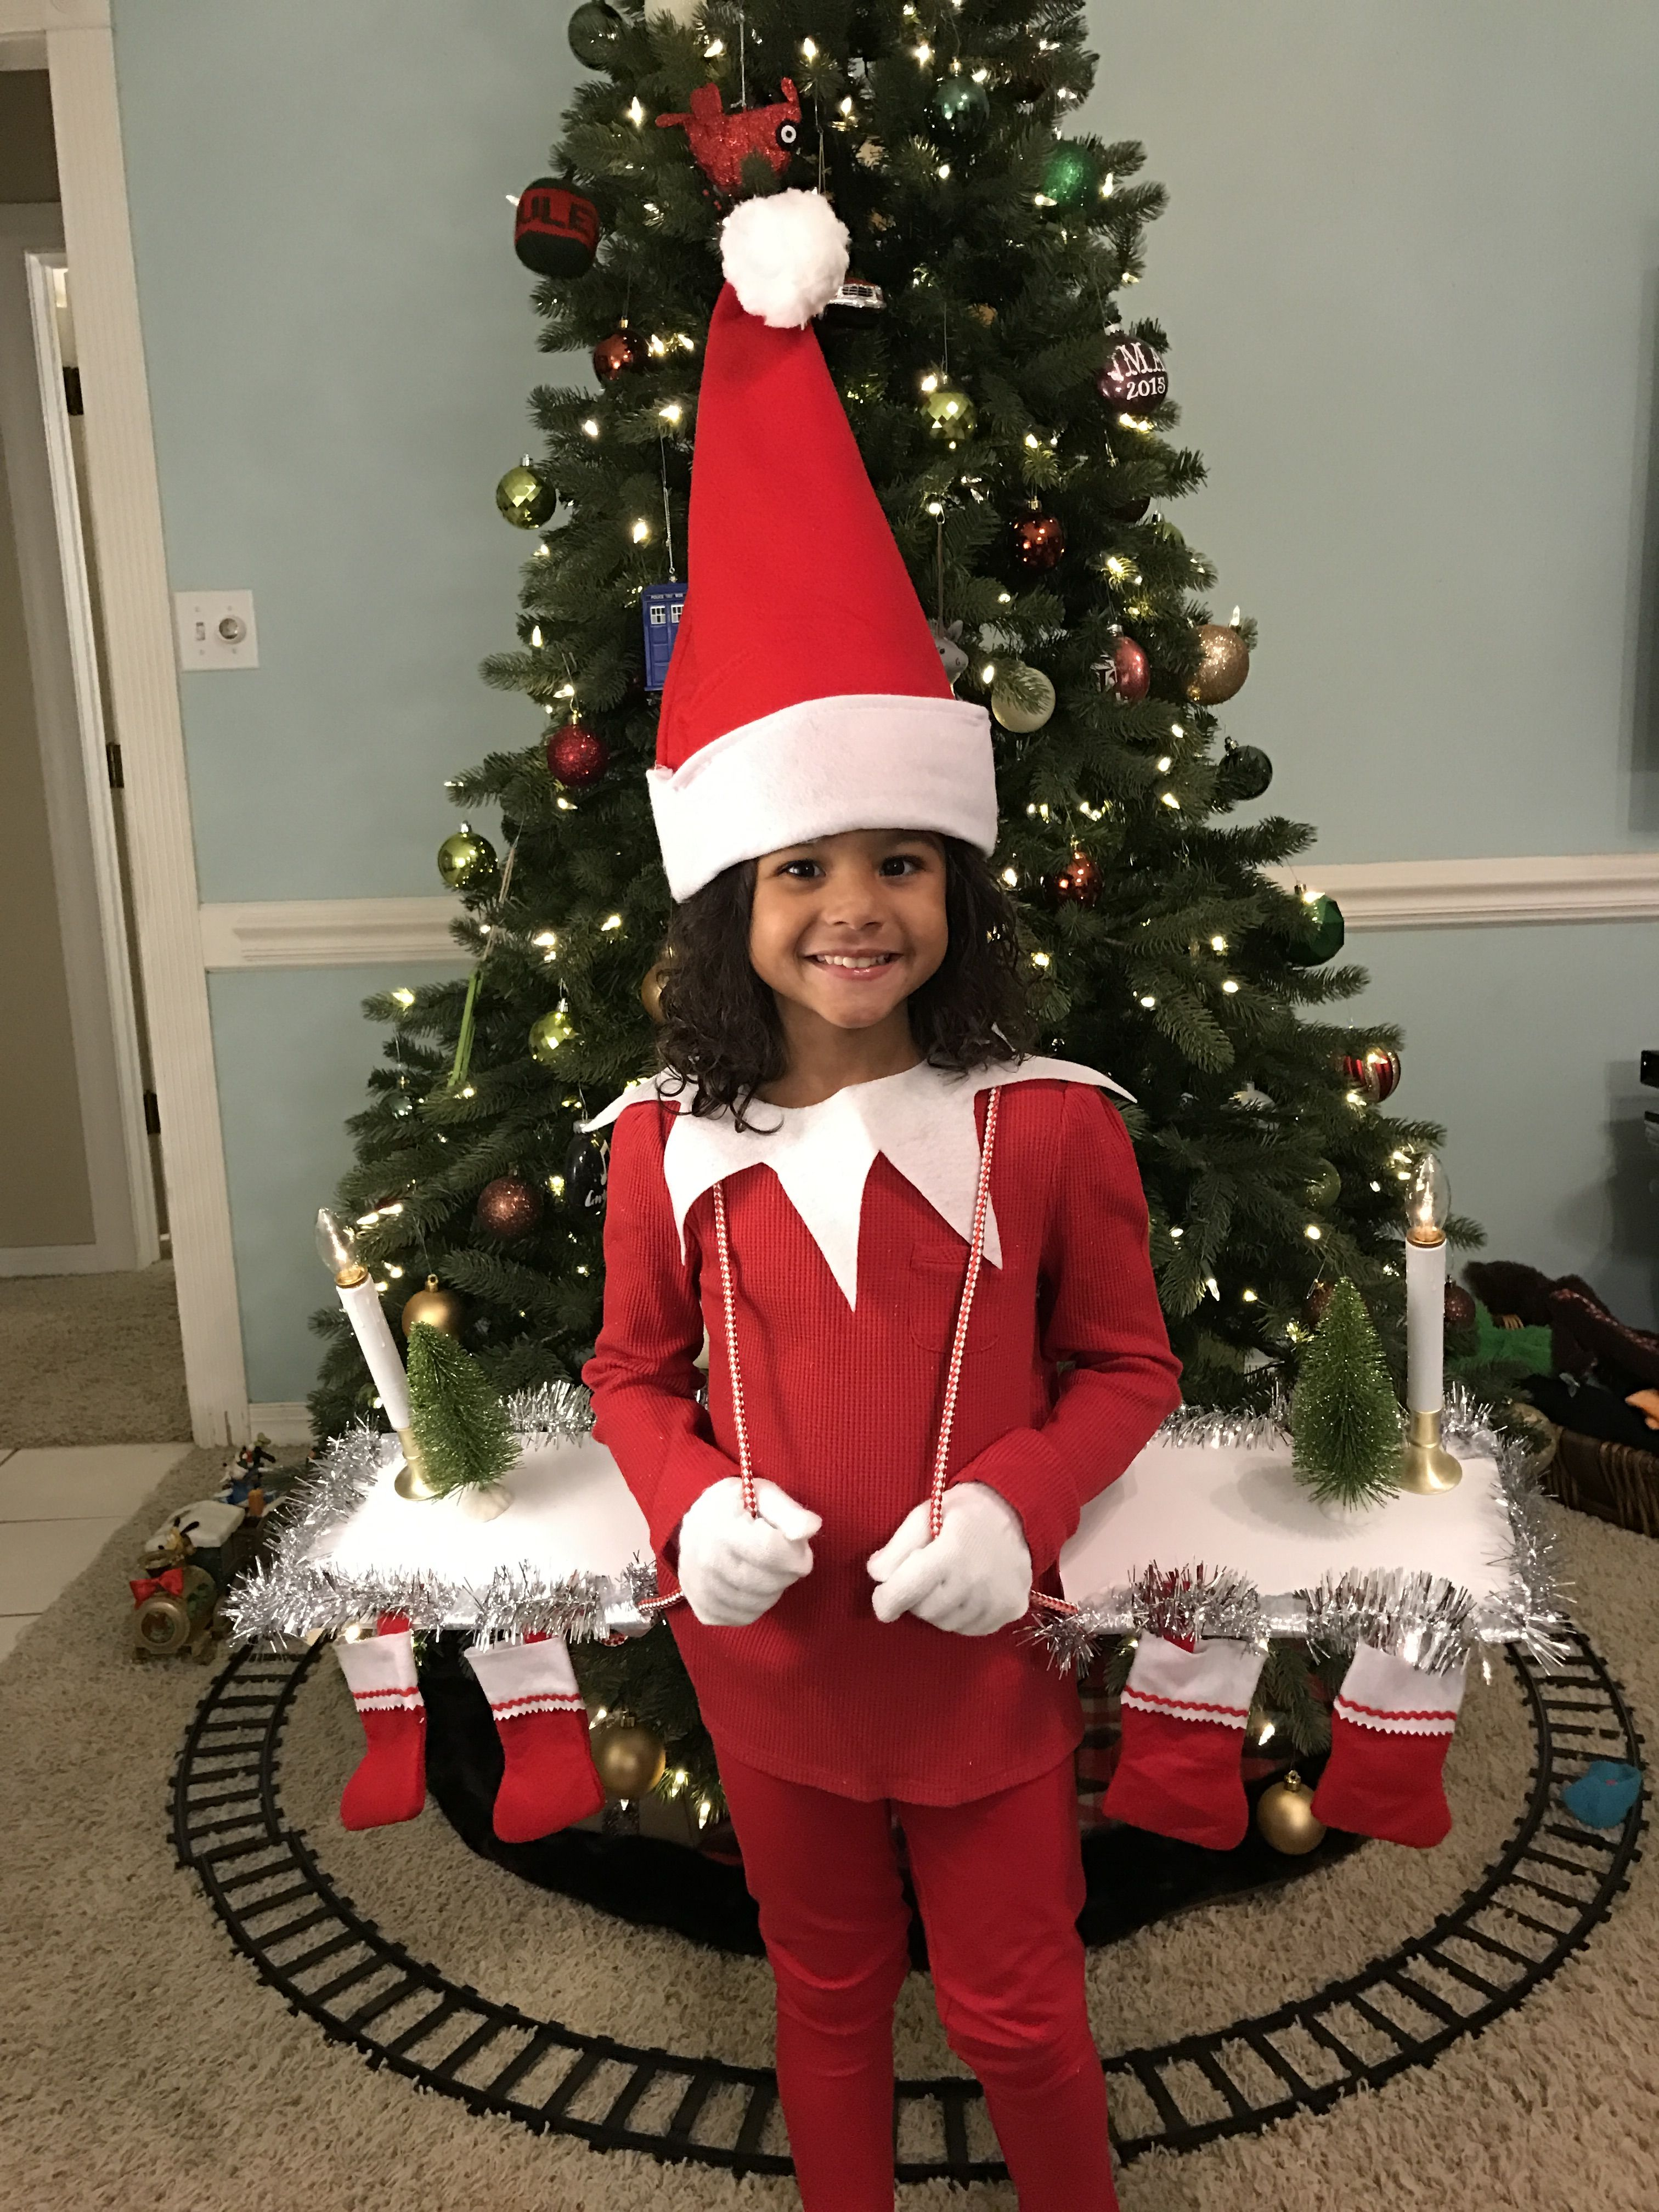 Pin by Anna McCauley on Elf on shelf costume